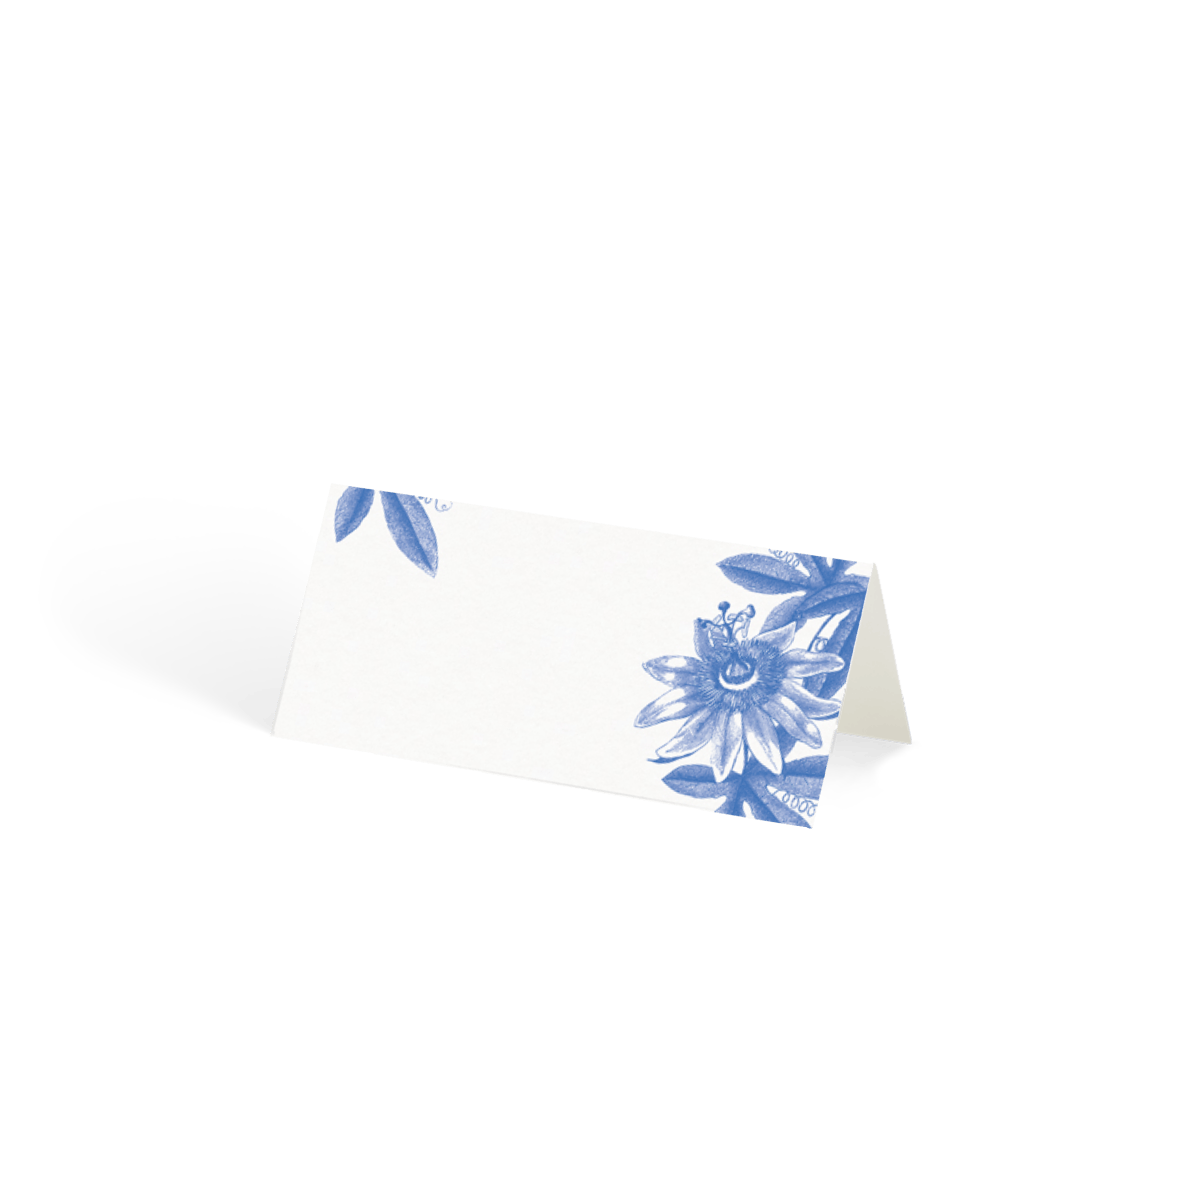 Https%3a%2f%2fwww.papier.com%2fproduct image%2f81098%2f8%2fblue passion flower 19392 front 1561566984.png?ixlib=rb 1.1